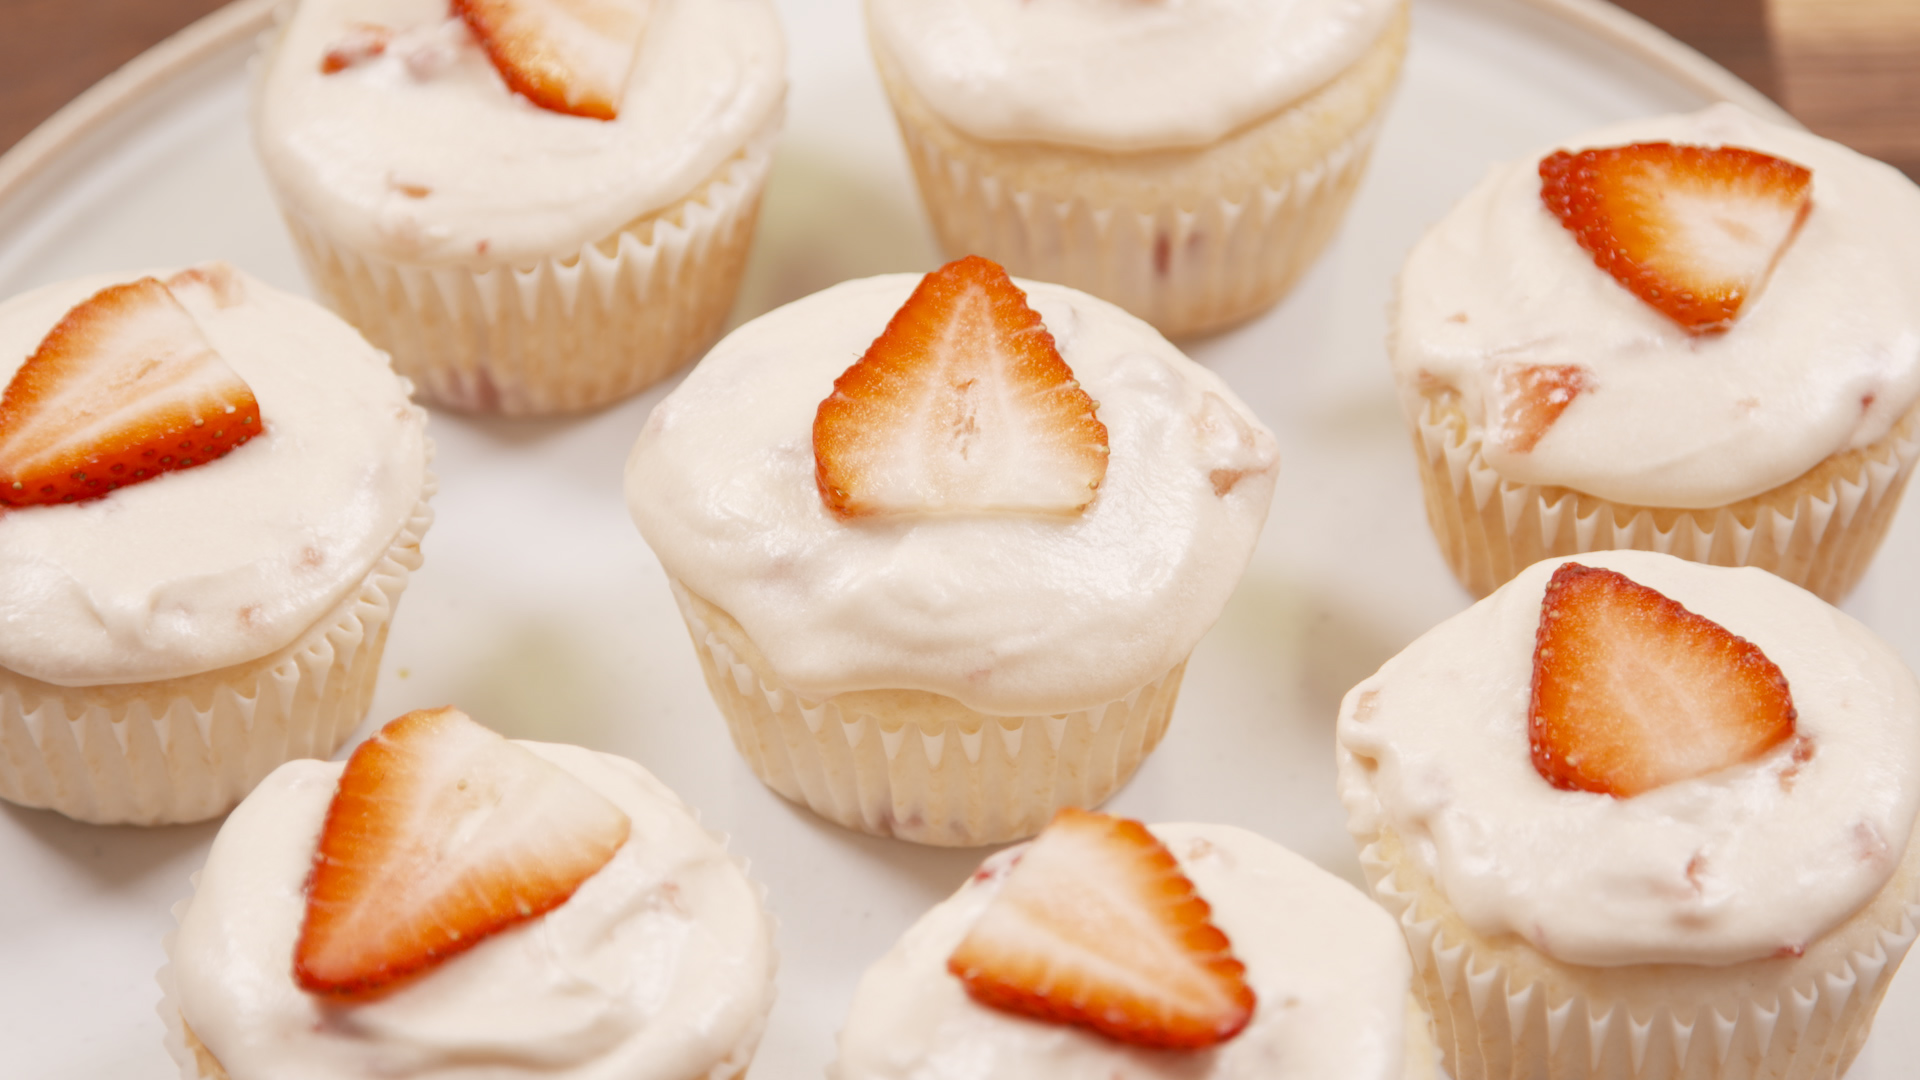 50 easy cupcake recipes from scratch how to make for How to make halloween cupcakes from scratch